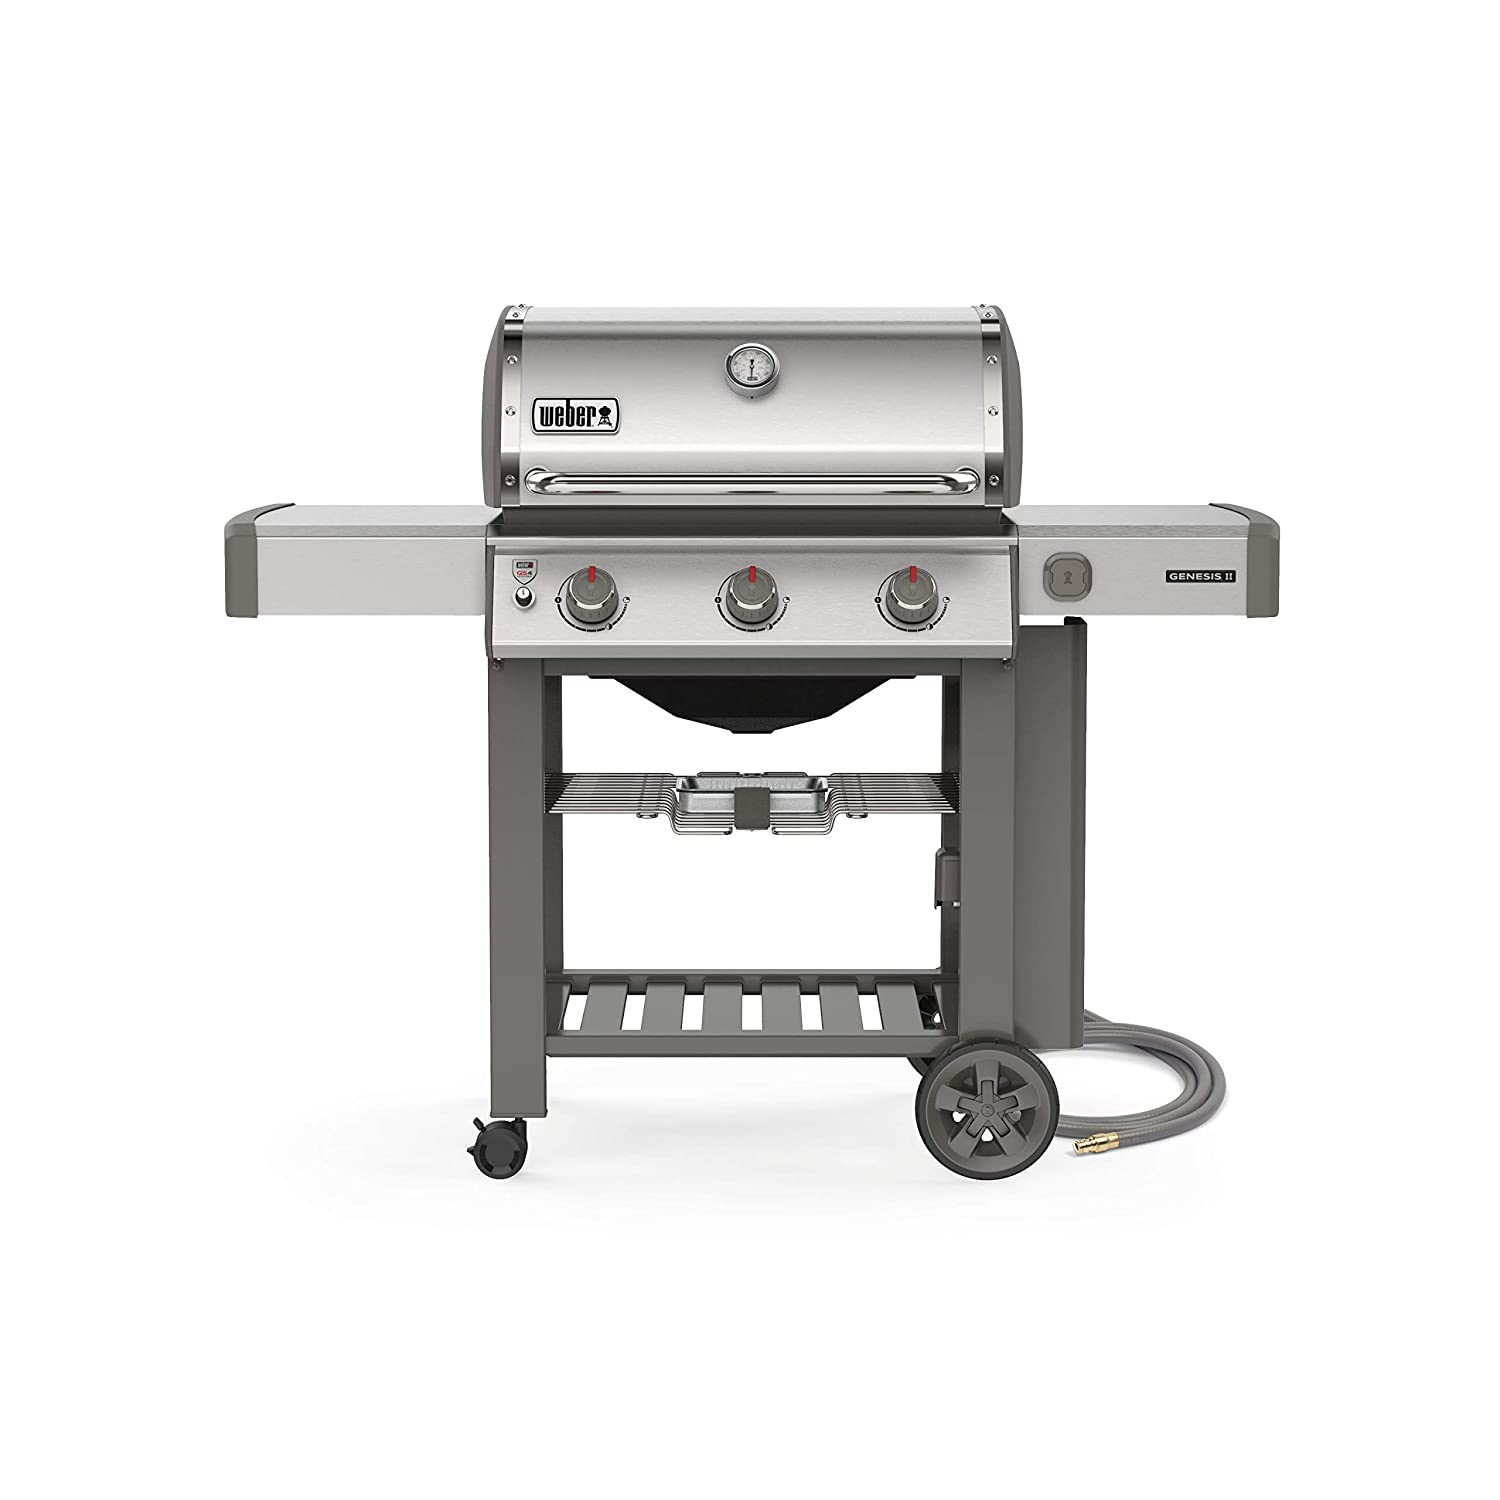 Weber 61001001 Genesis II S-310 3-Burner Natural Gas Grill, Stainless Steel